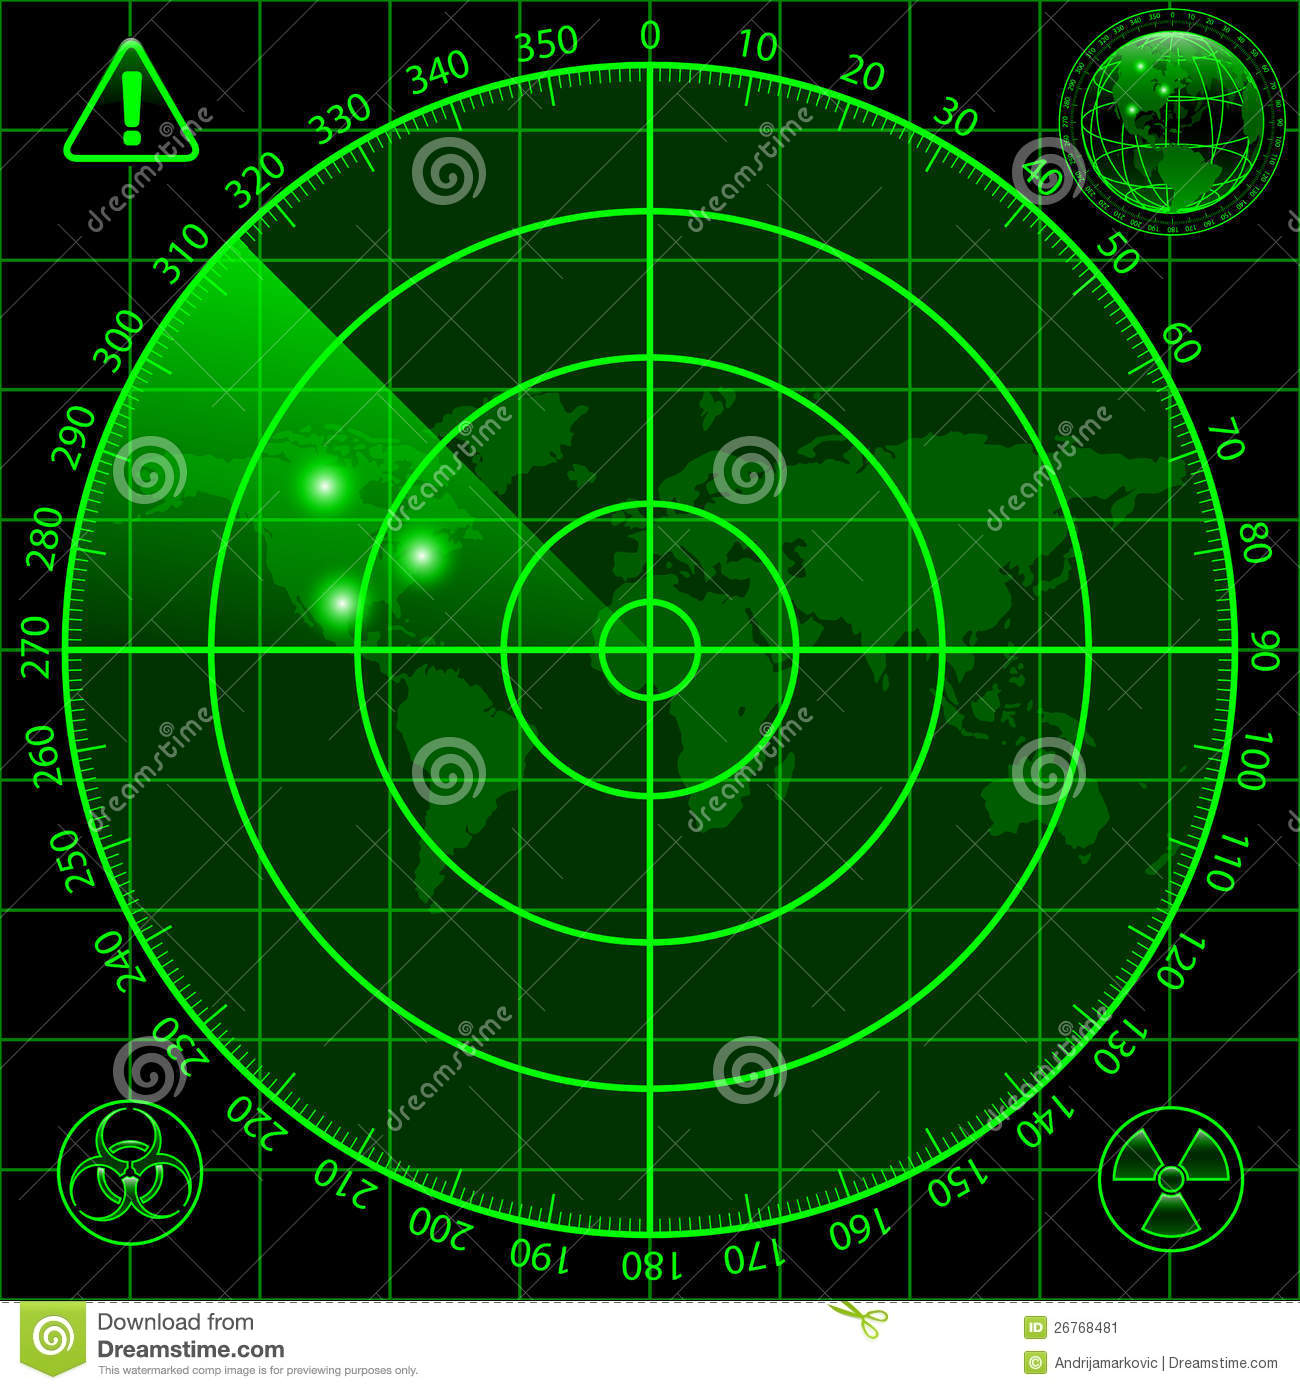 Illustration of radar screen as a security tool.